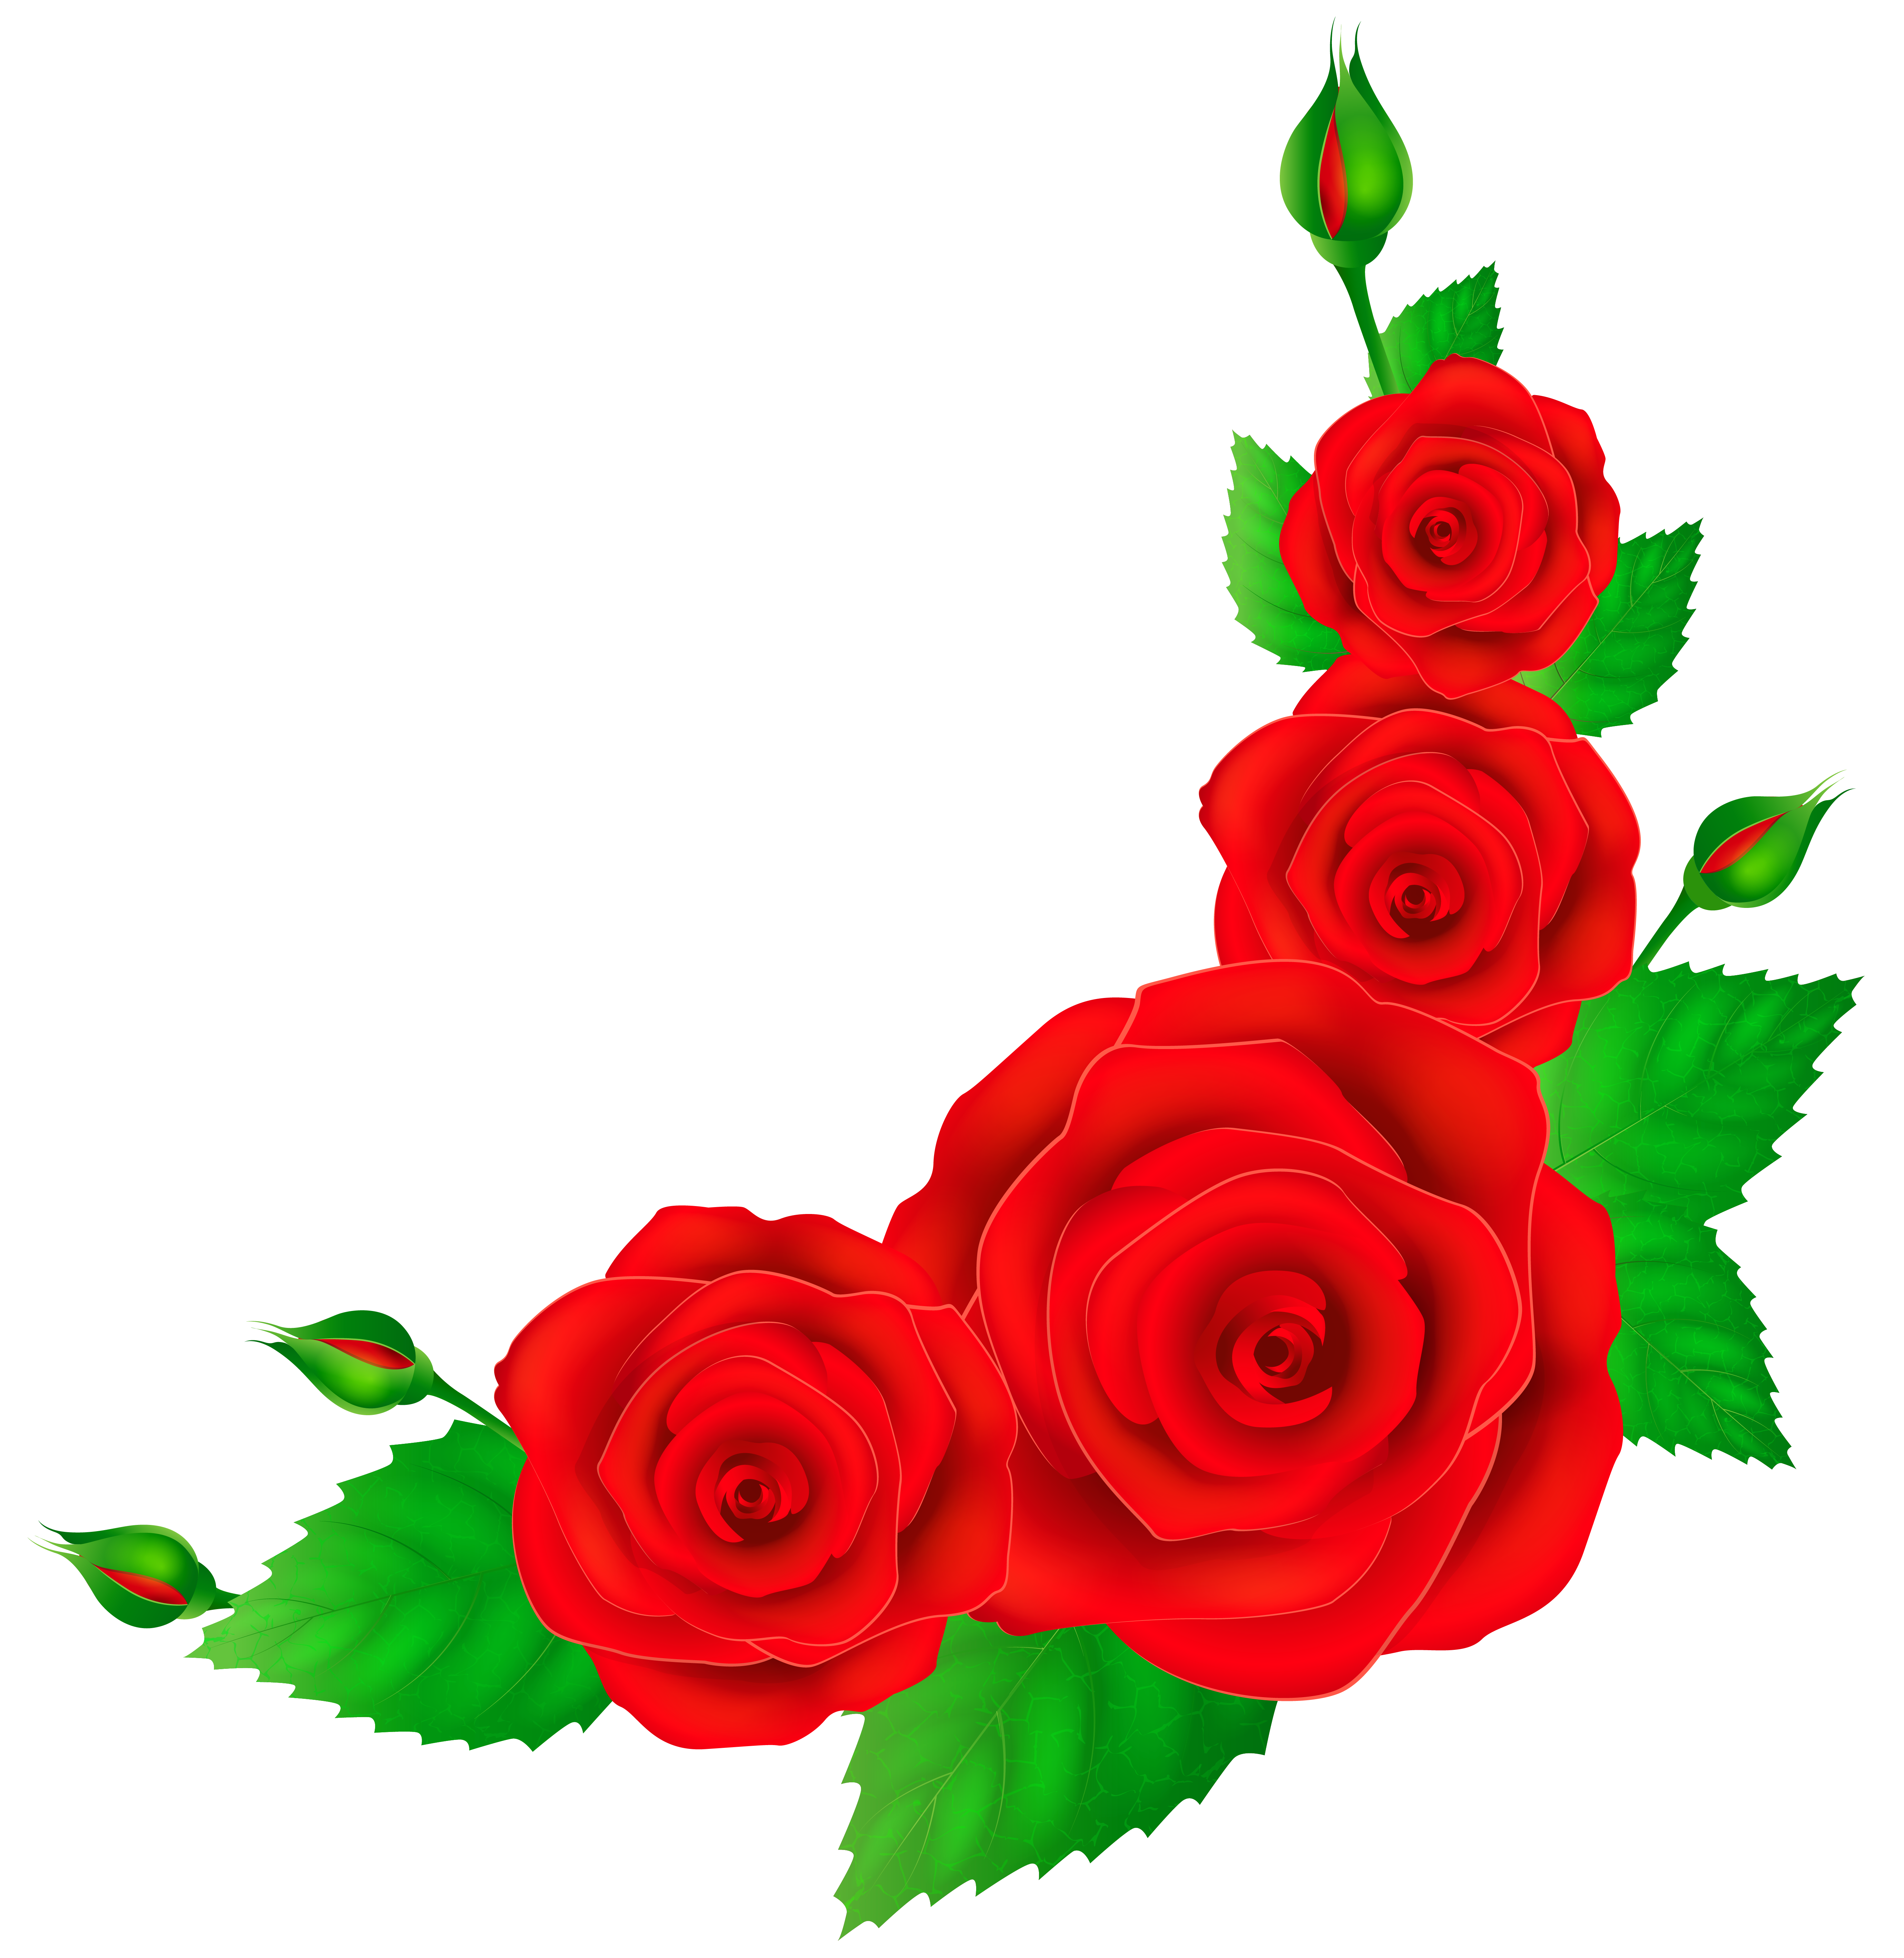 Red Rose clipart decorative #8